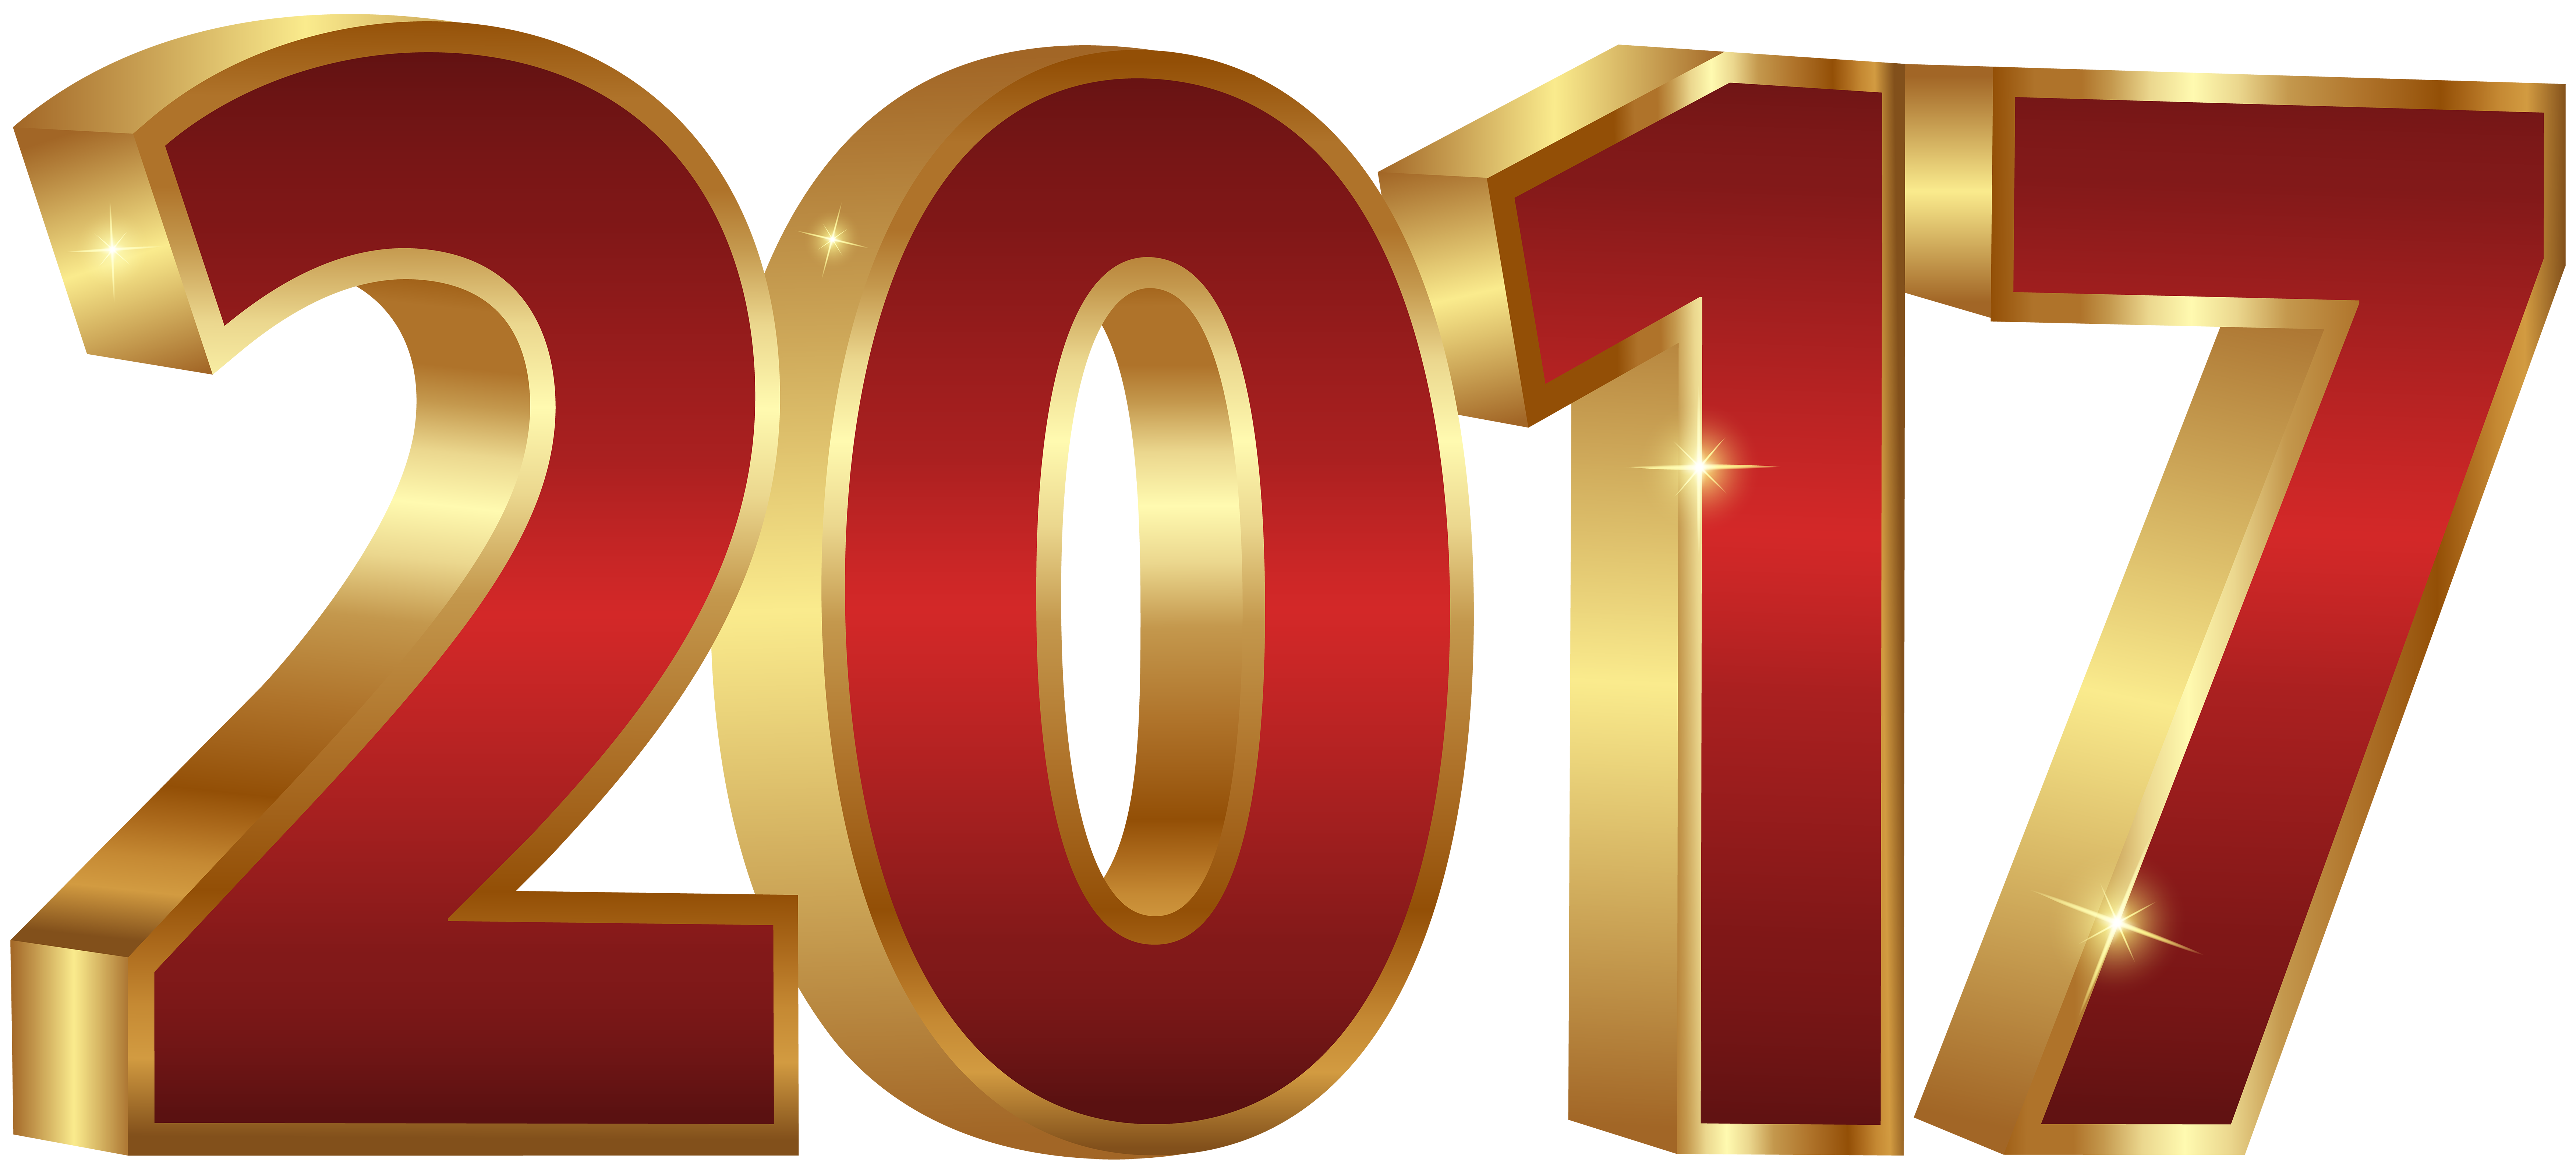 2017 clipart red.  and gold png